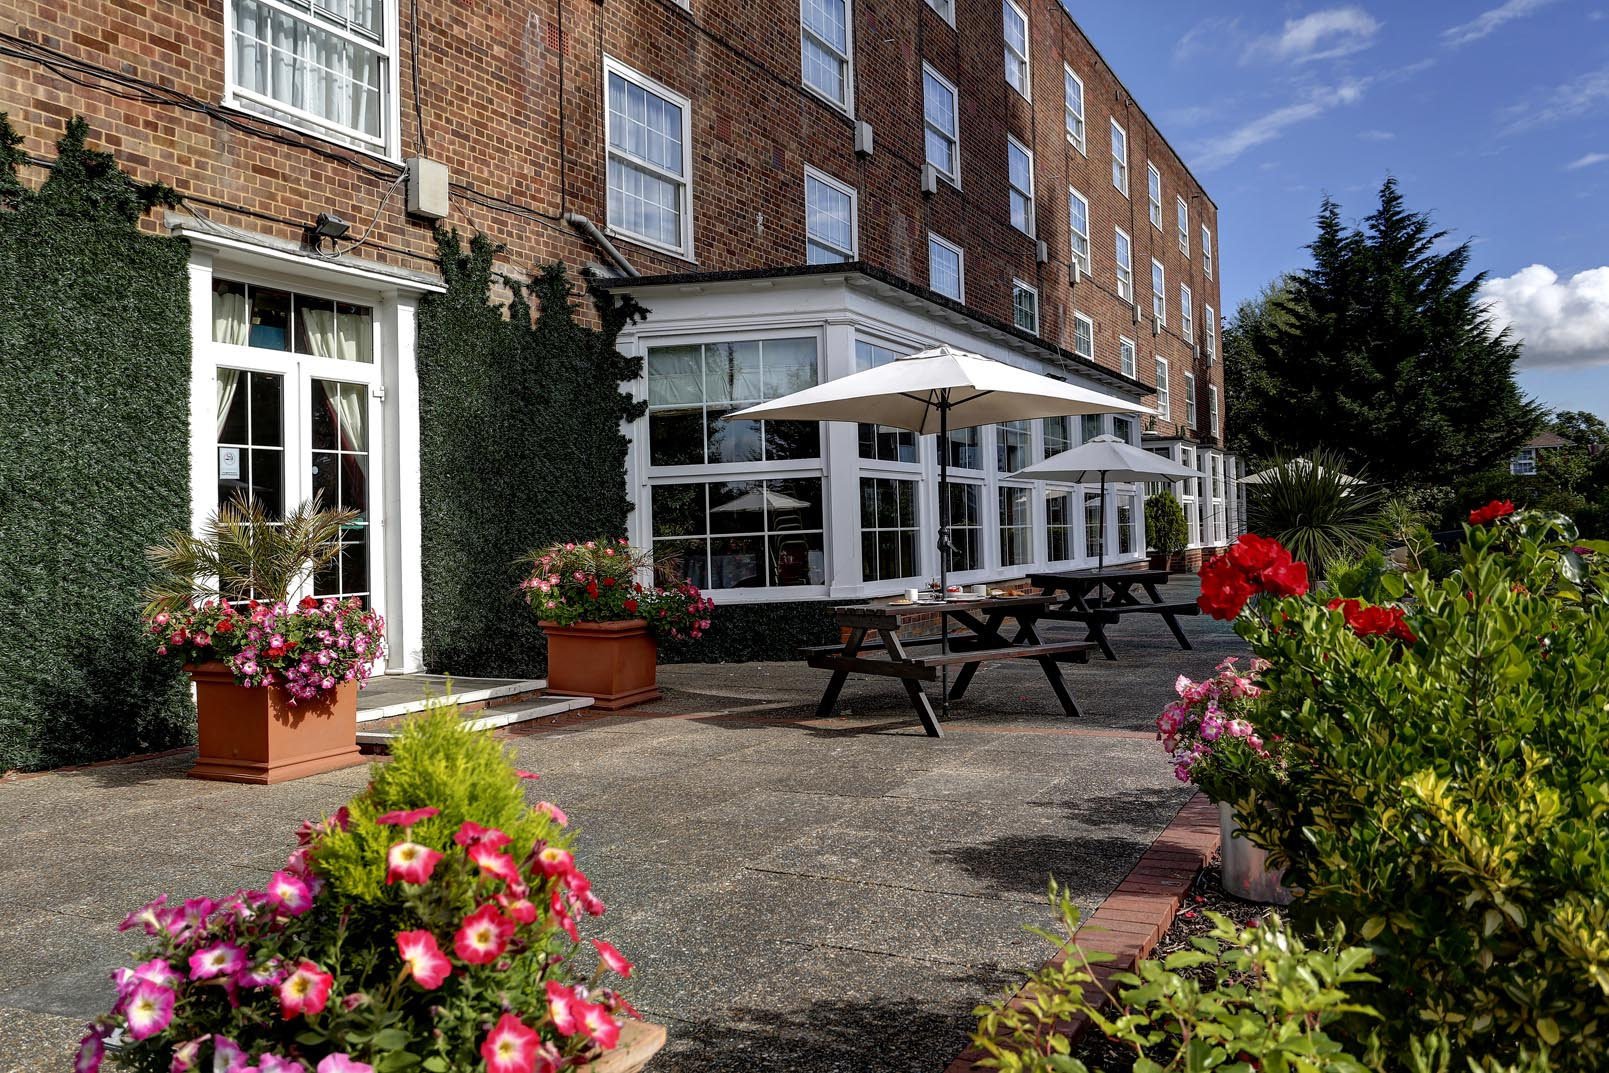 Wonderful ... Homestead Court Hotel Grounds And Hotel 07 83816 ...